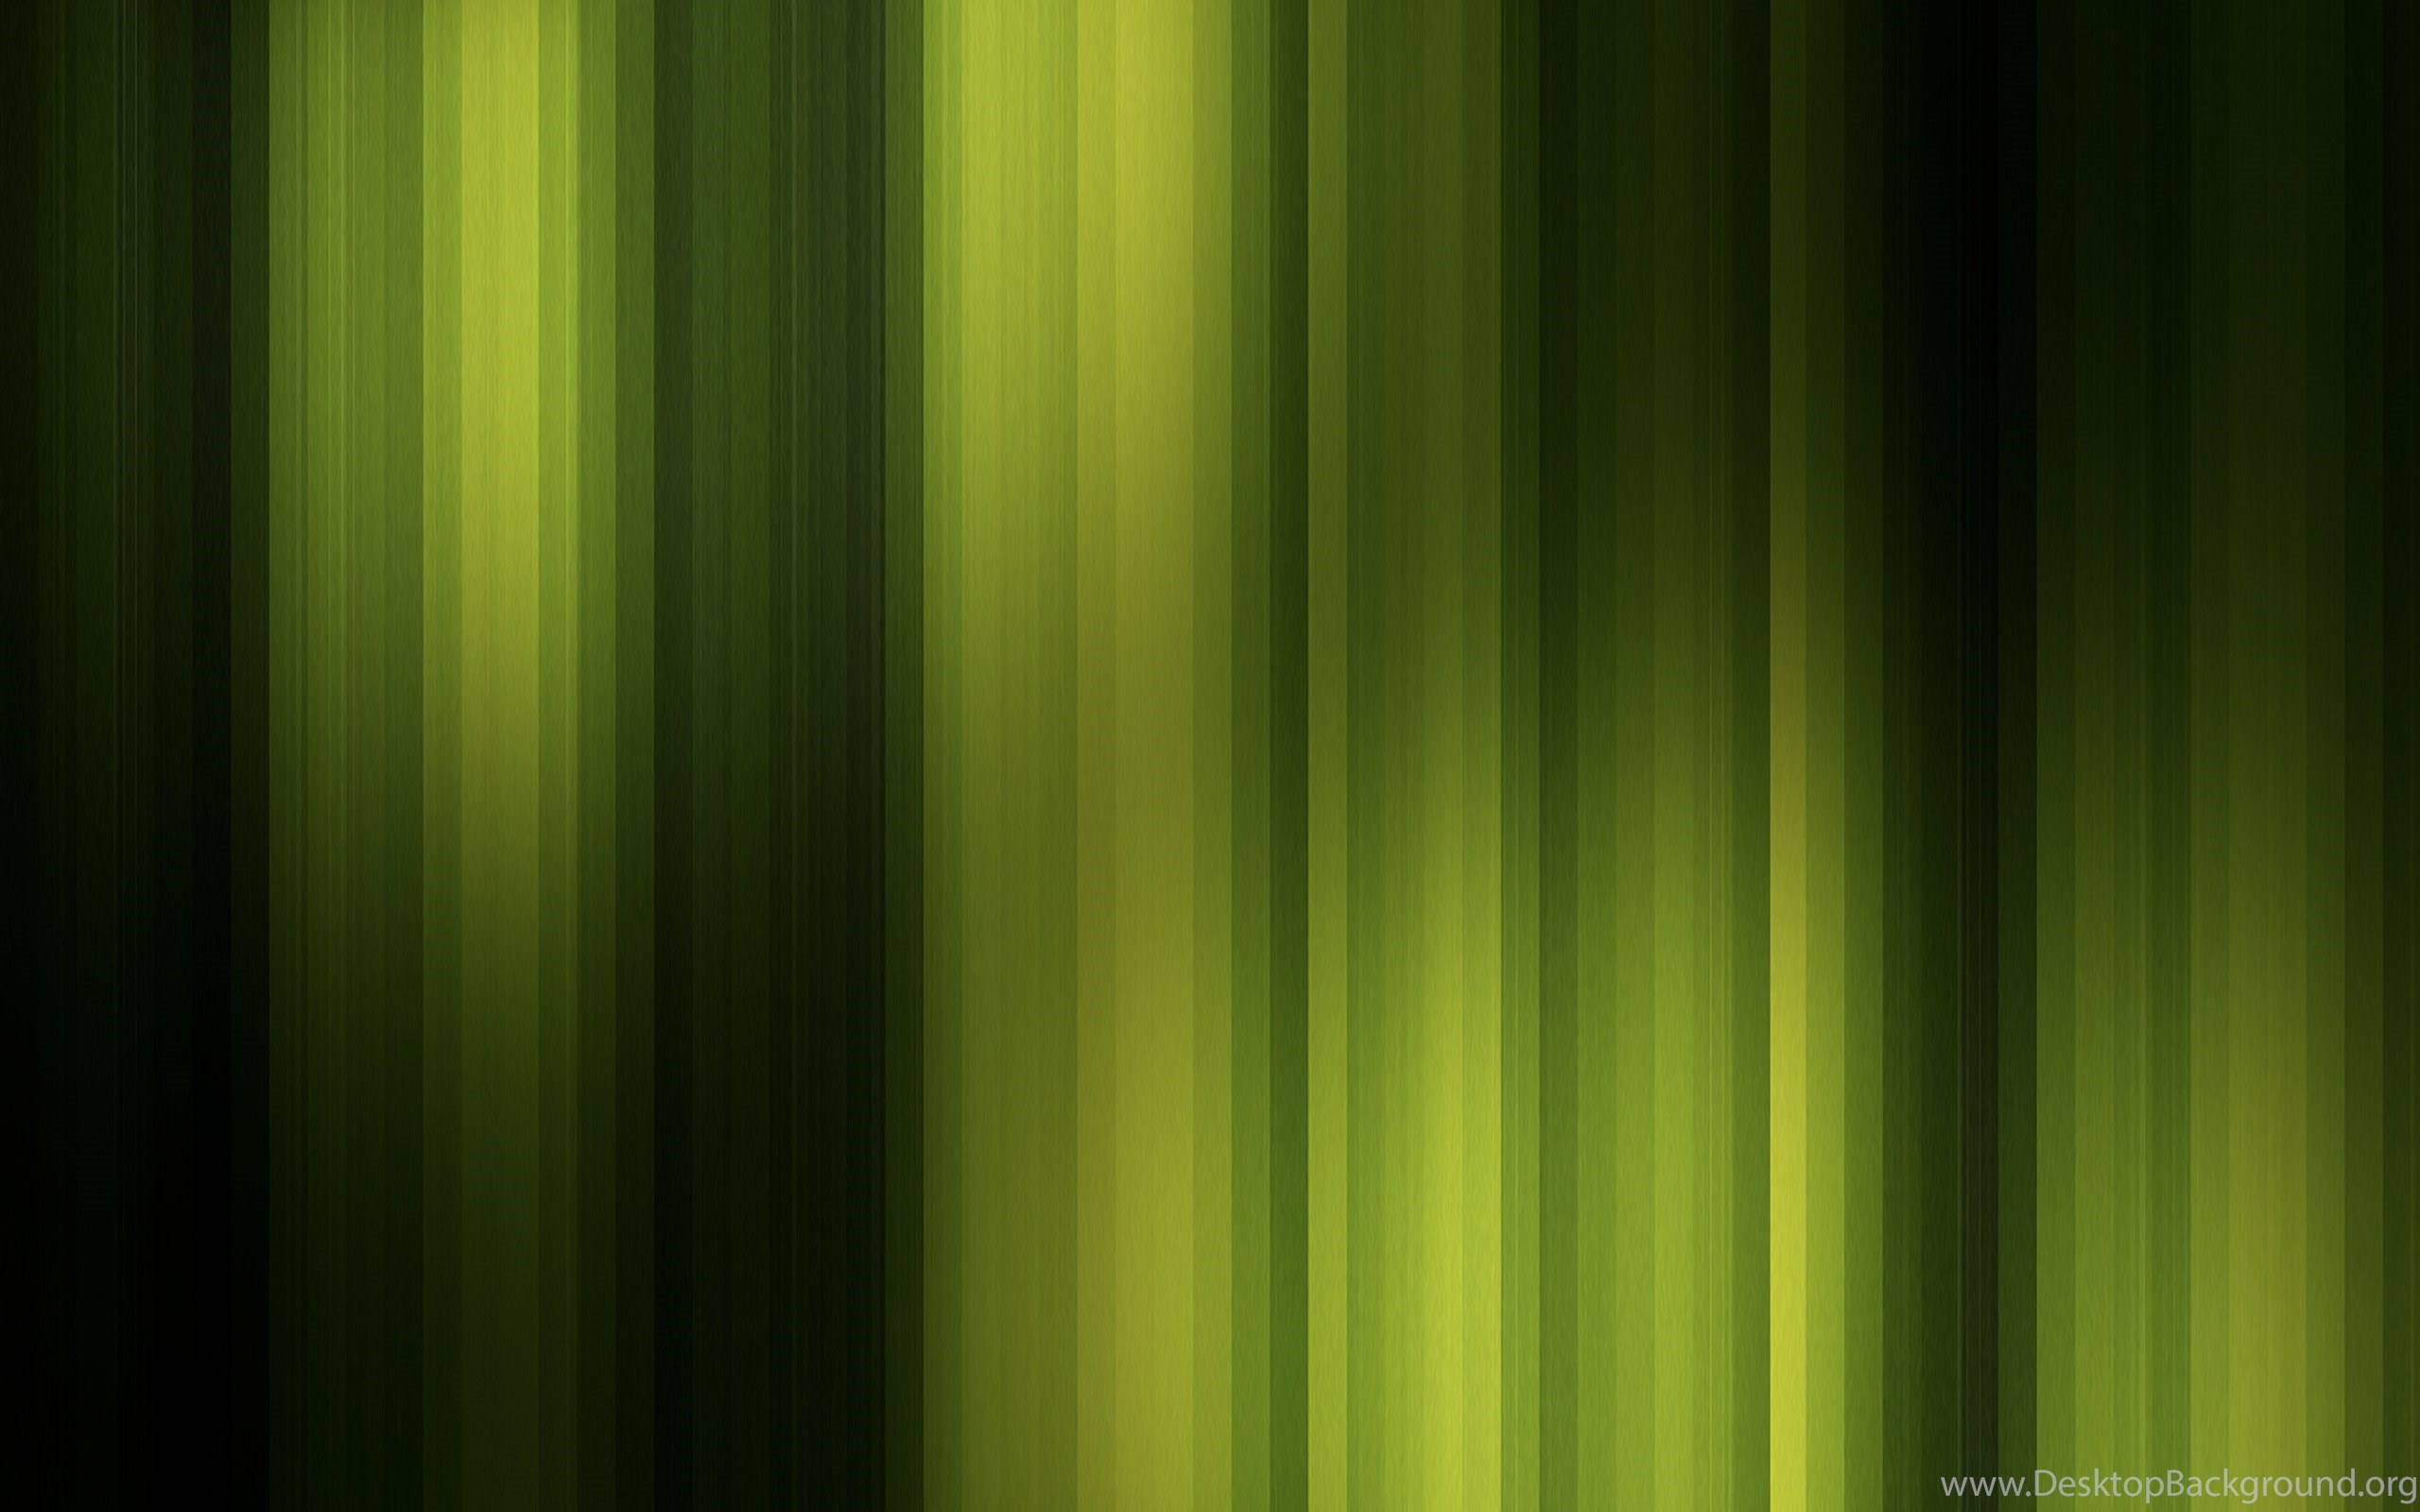 Green And White Striped Wallpapers All New Desktop Background